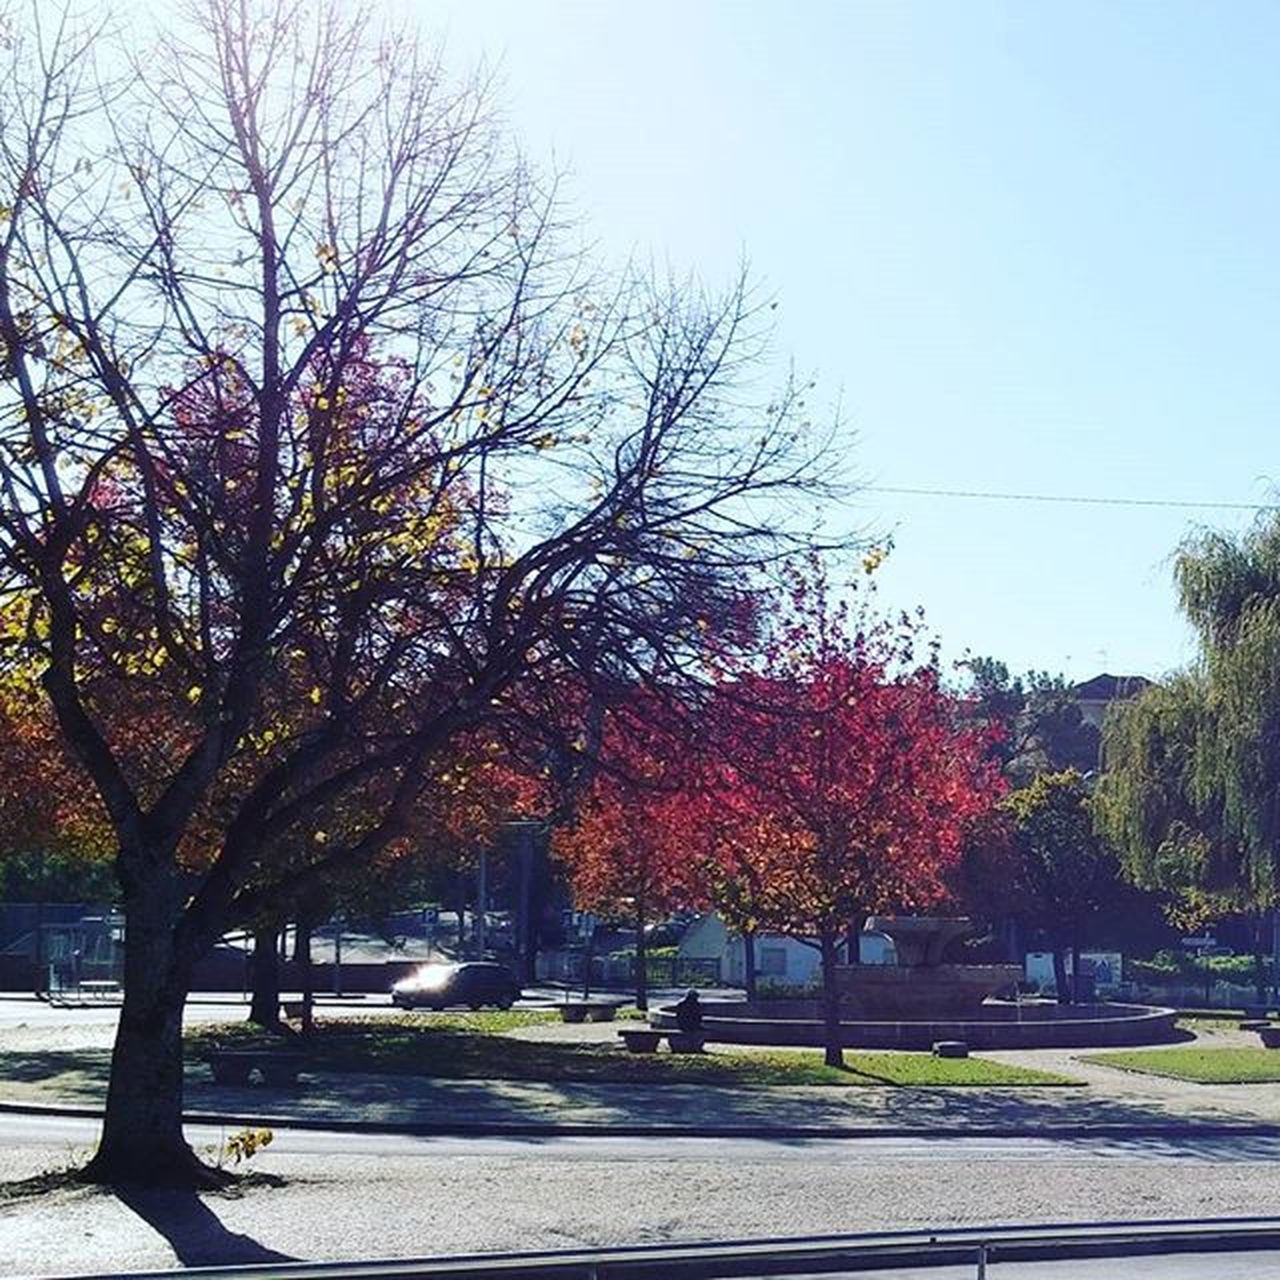 tree, autumn, nature, road, growth, change, outdoors, day, beauty in nature, street, tranquil scene, tranquility, scenics, branch, clear sky, transportation, no people, sky, sunlight, the way forward, park - man made space, travel destinations, leaf, bare tree